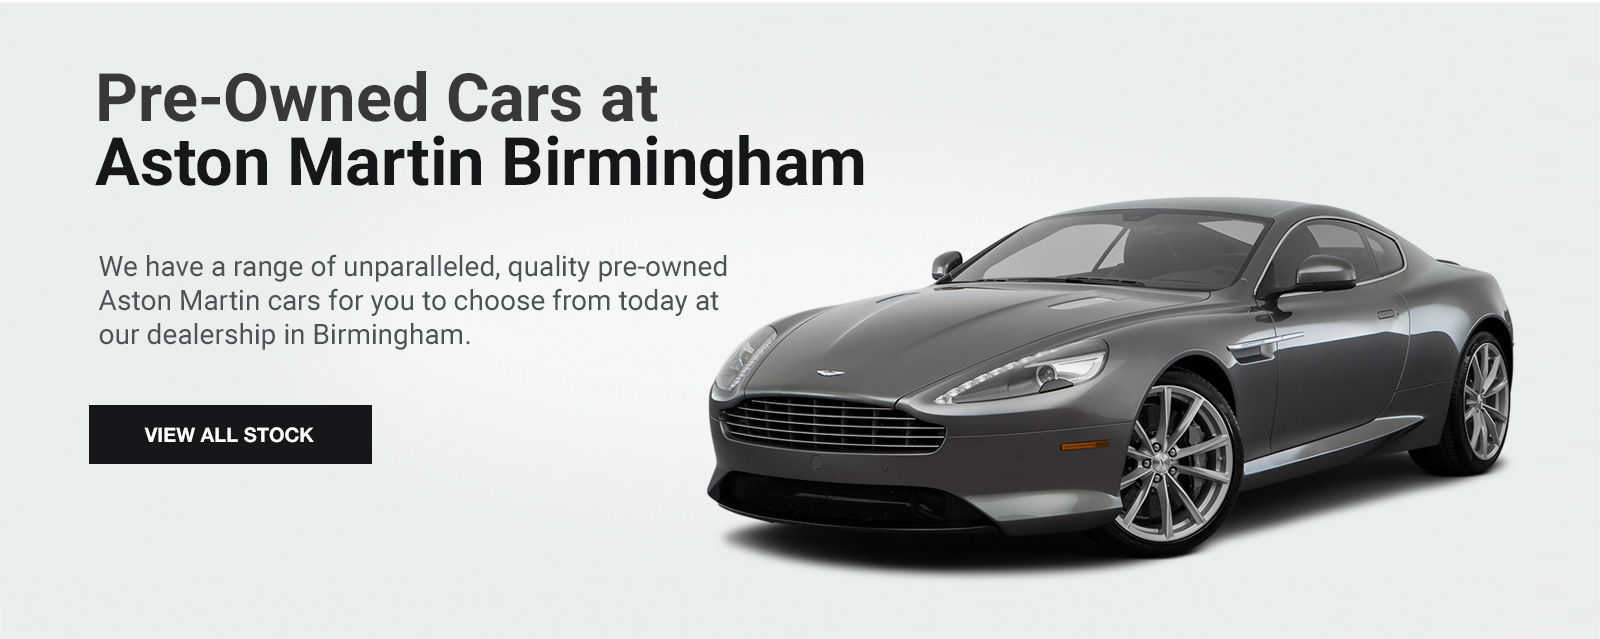 Pre-Owned Cars at Aston Martin Birmingham